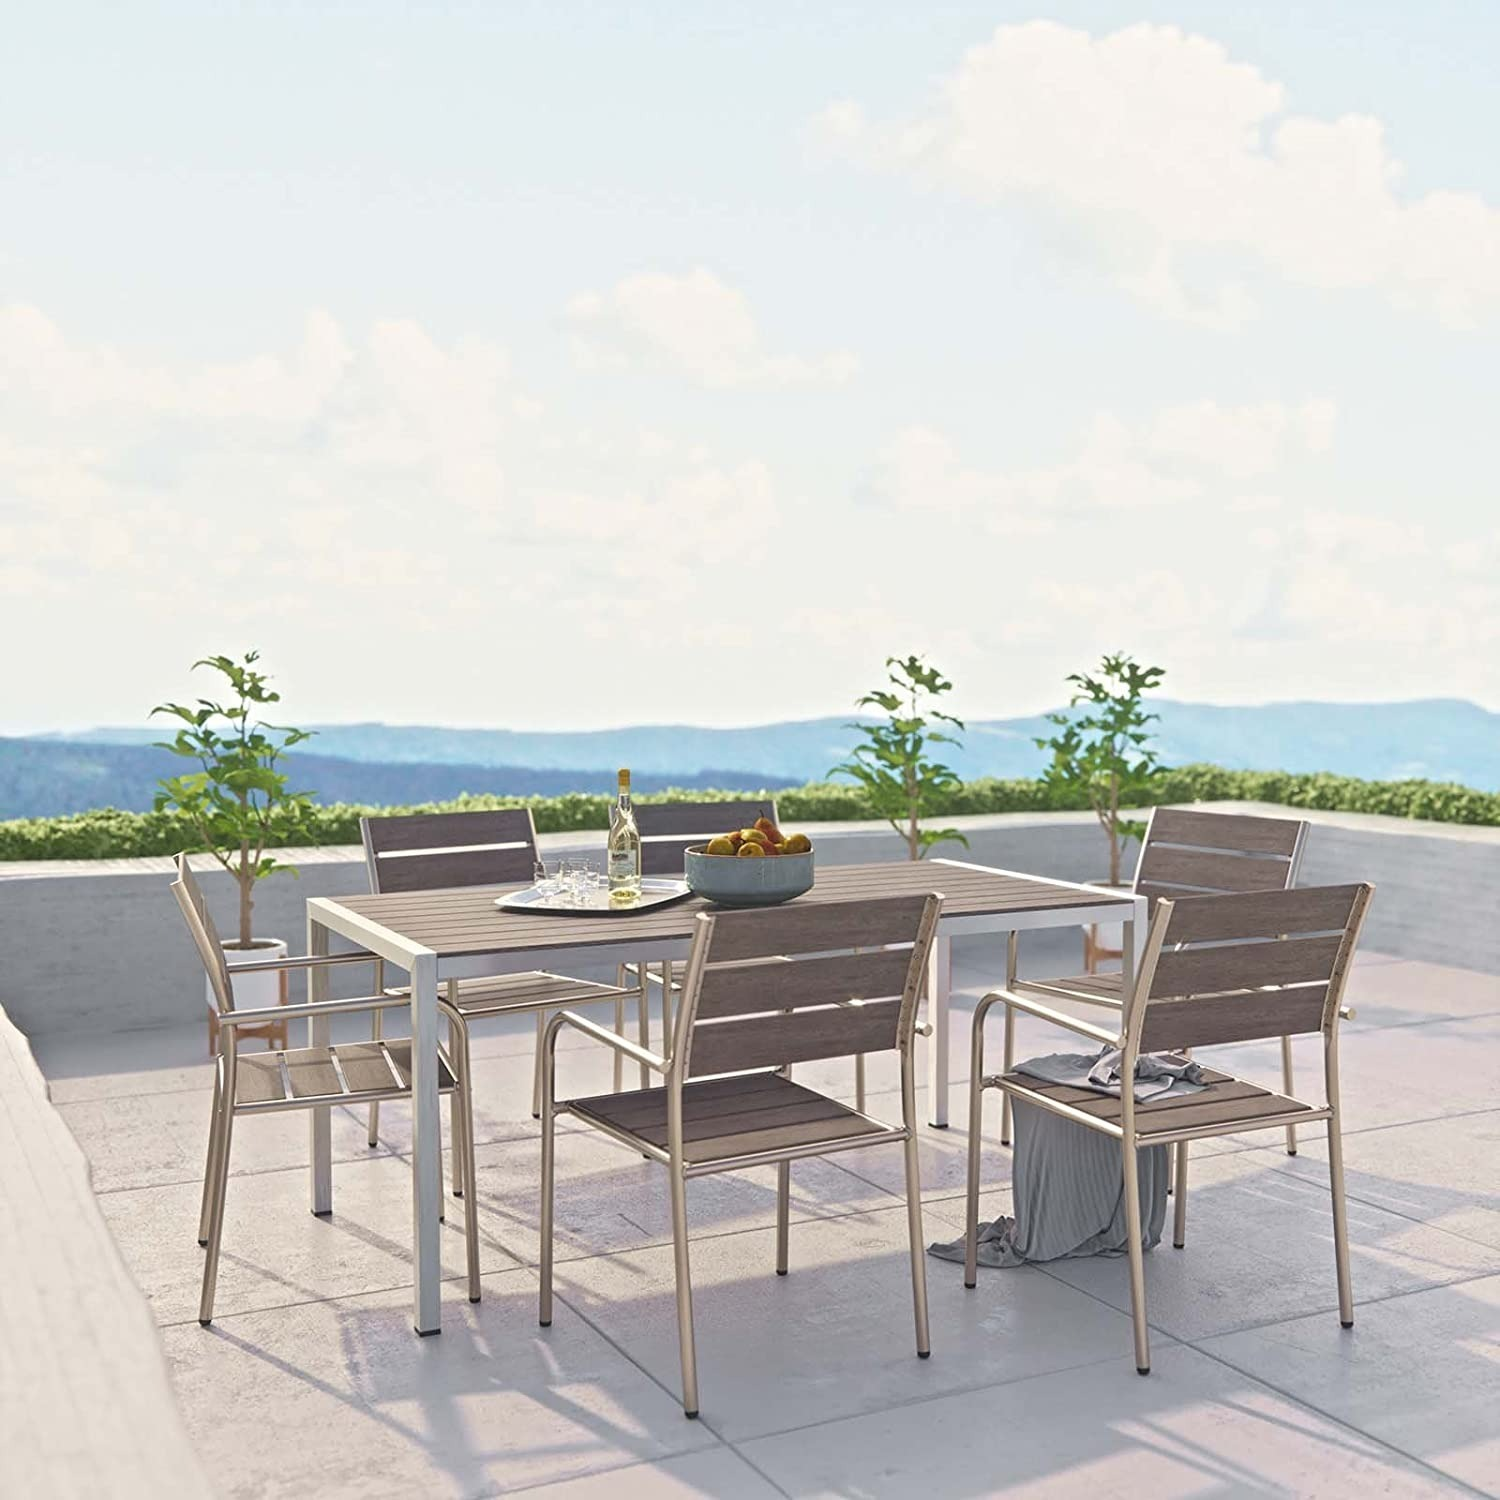 Modern 7-Piece Outdoor Dining Set In Silver & Gray - image-6